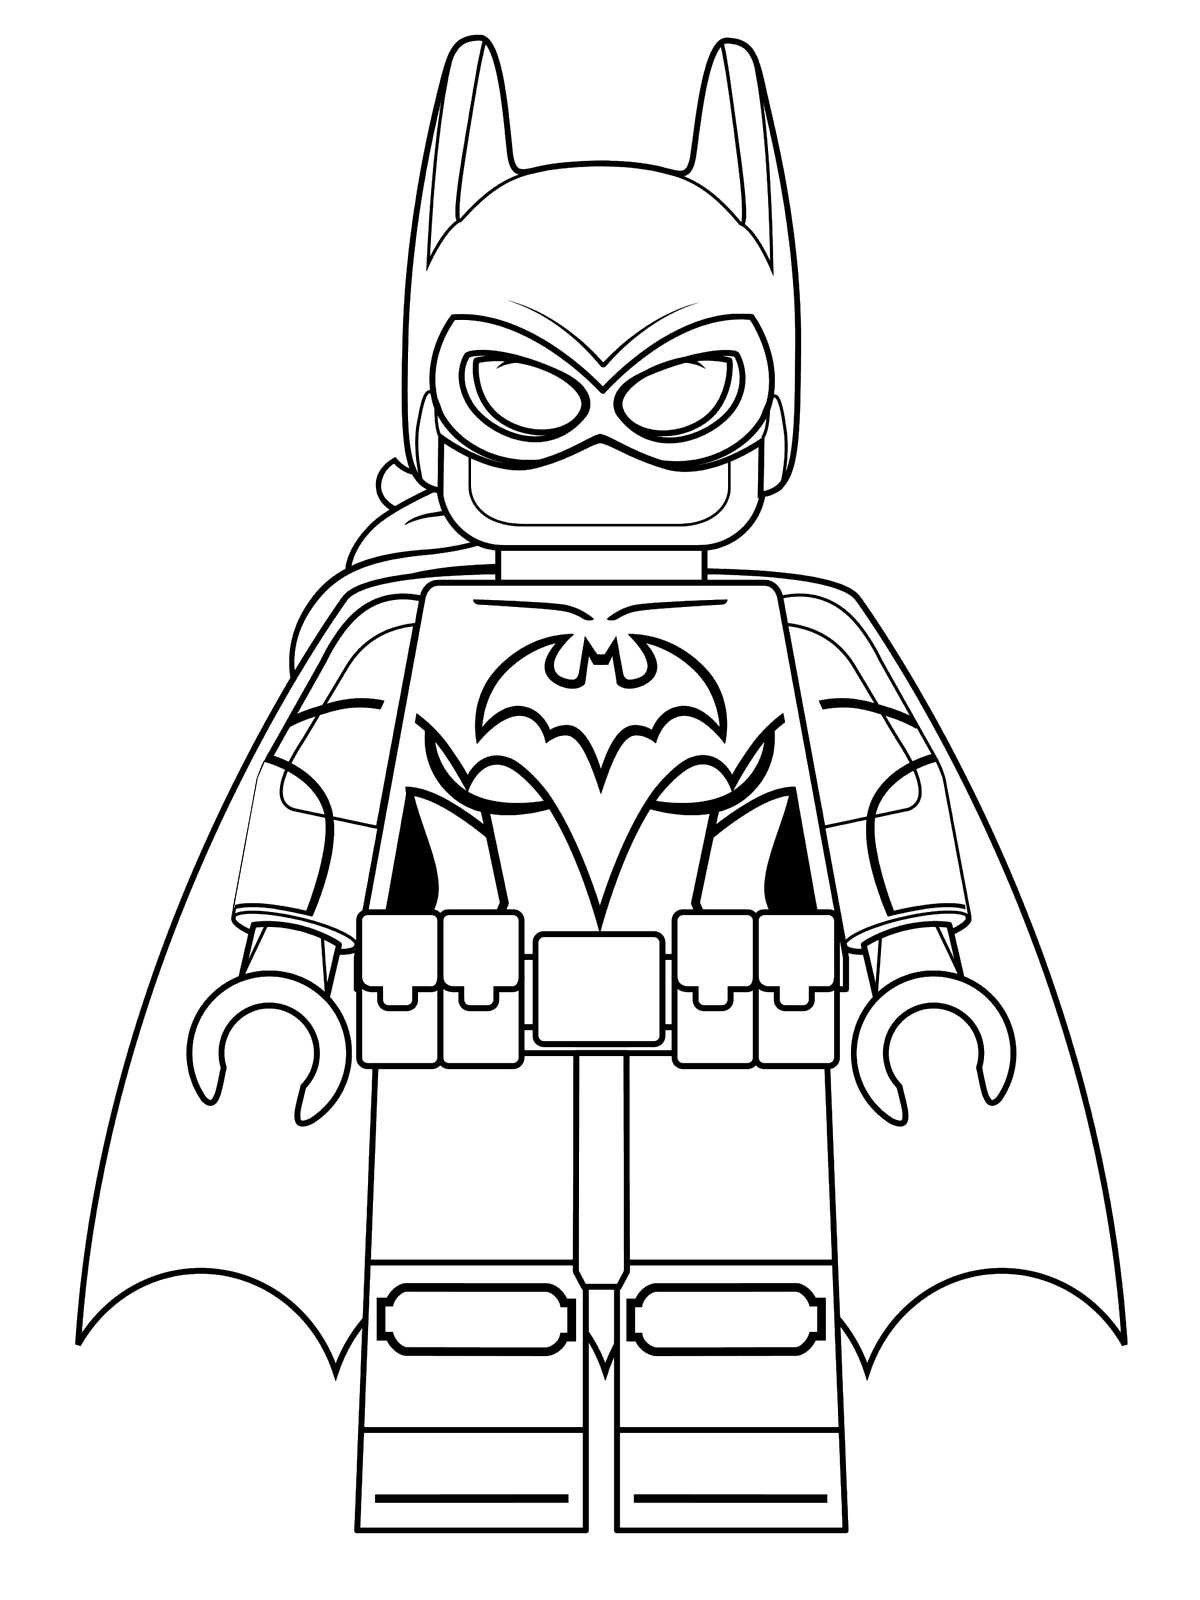 Ausmalbild Lego Batman Genial Lego Batman Coloring Pages Best Coloring Pages for Kids Inspirierend Galerie